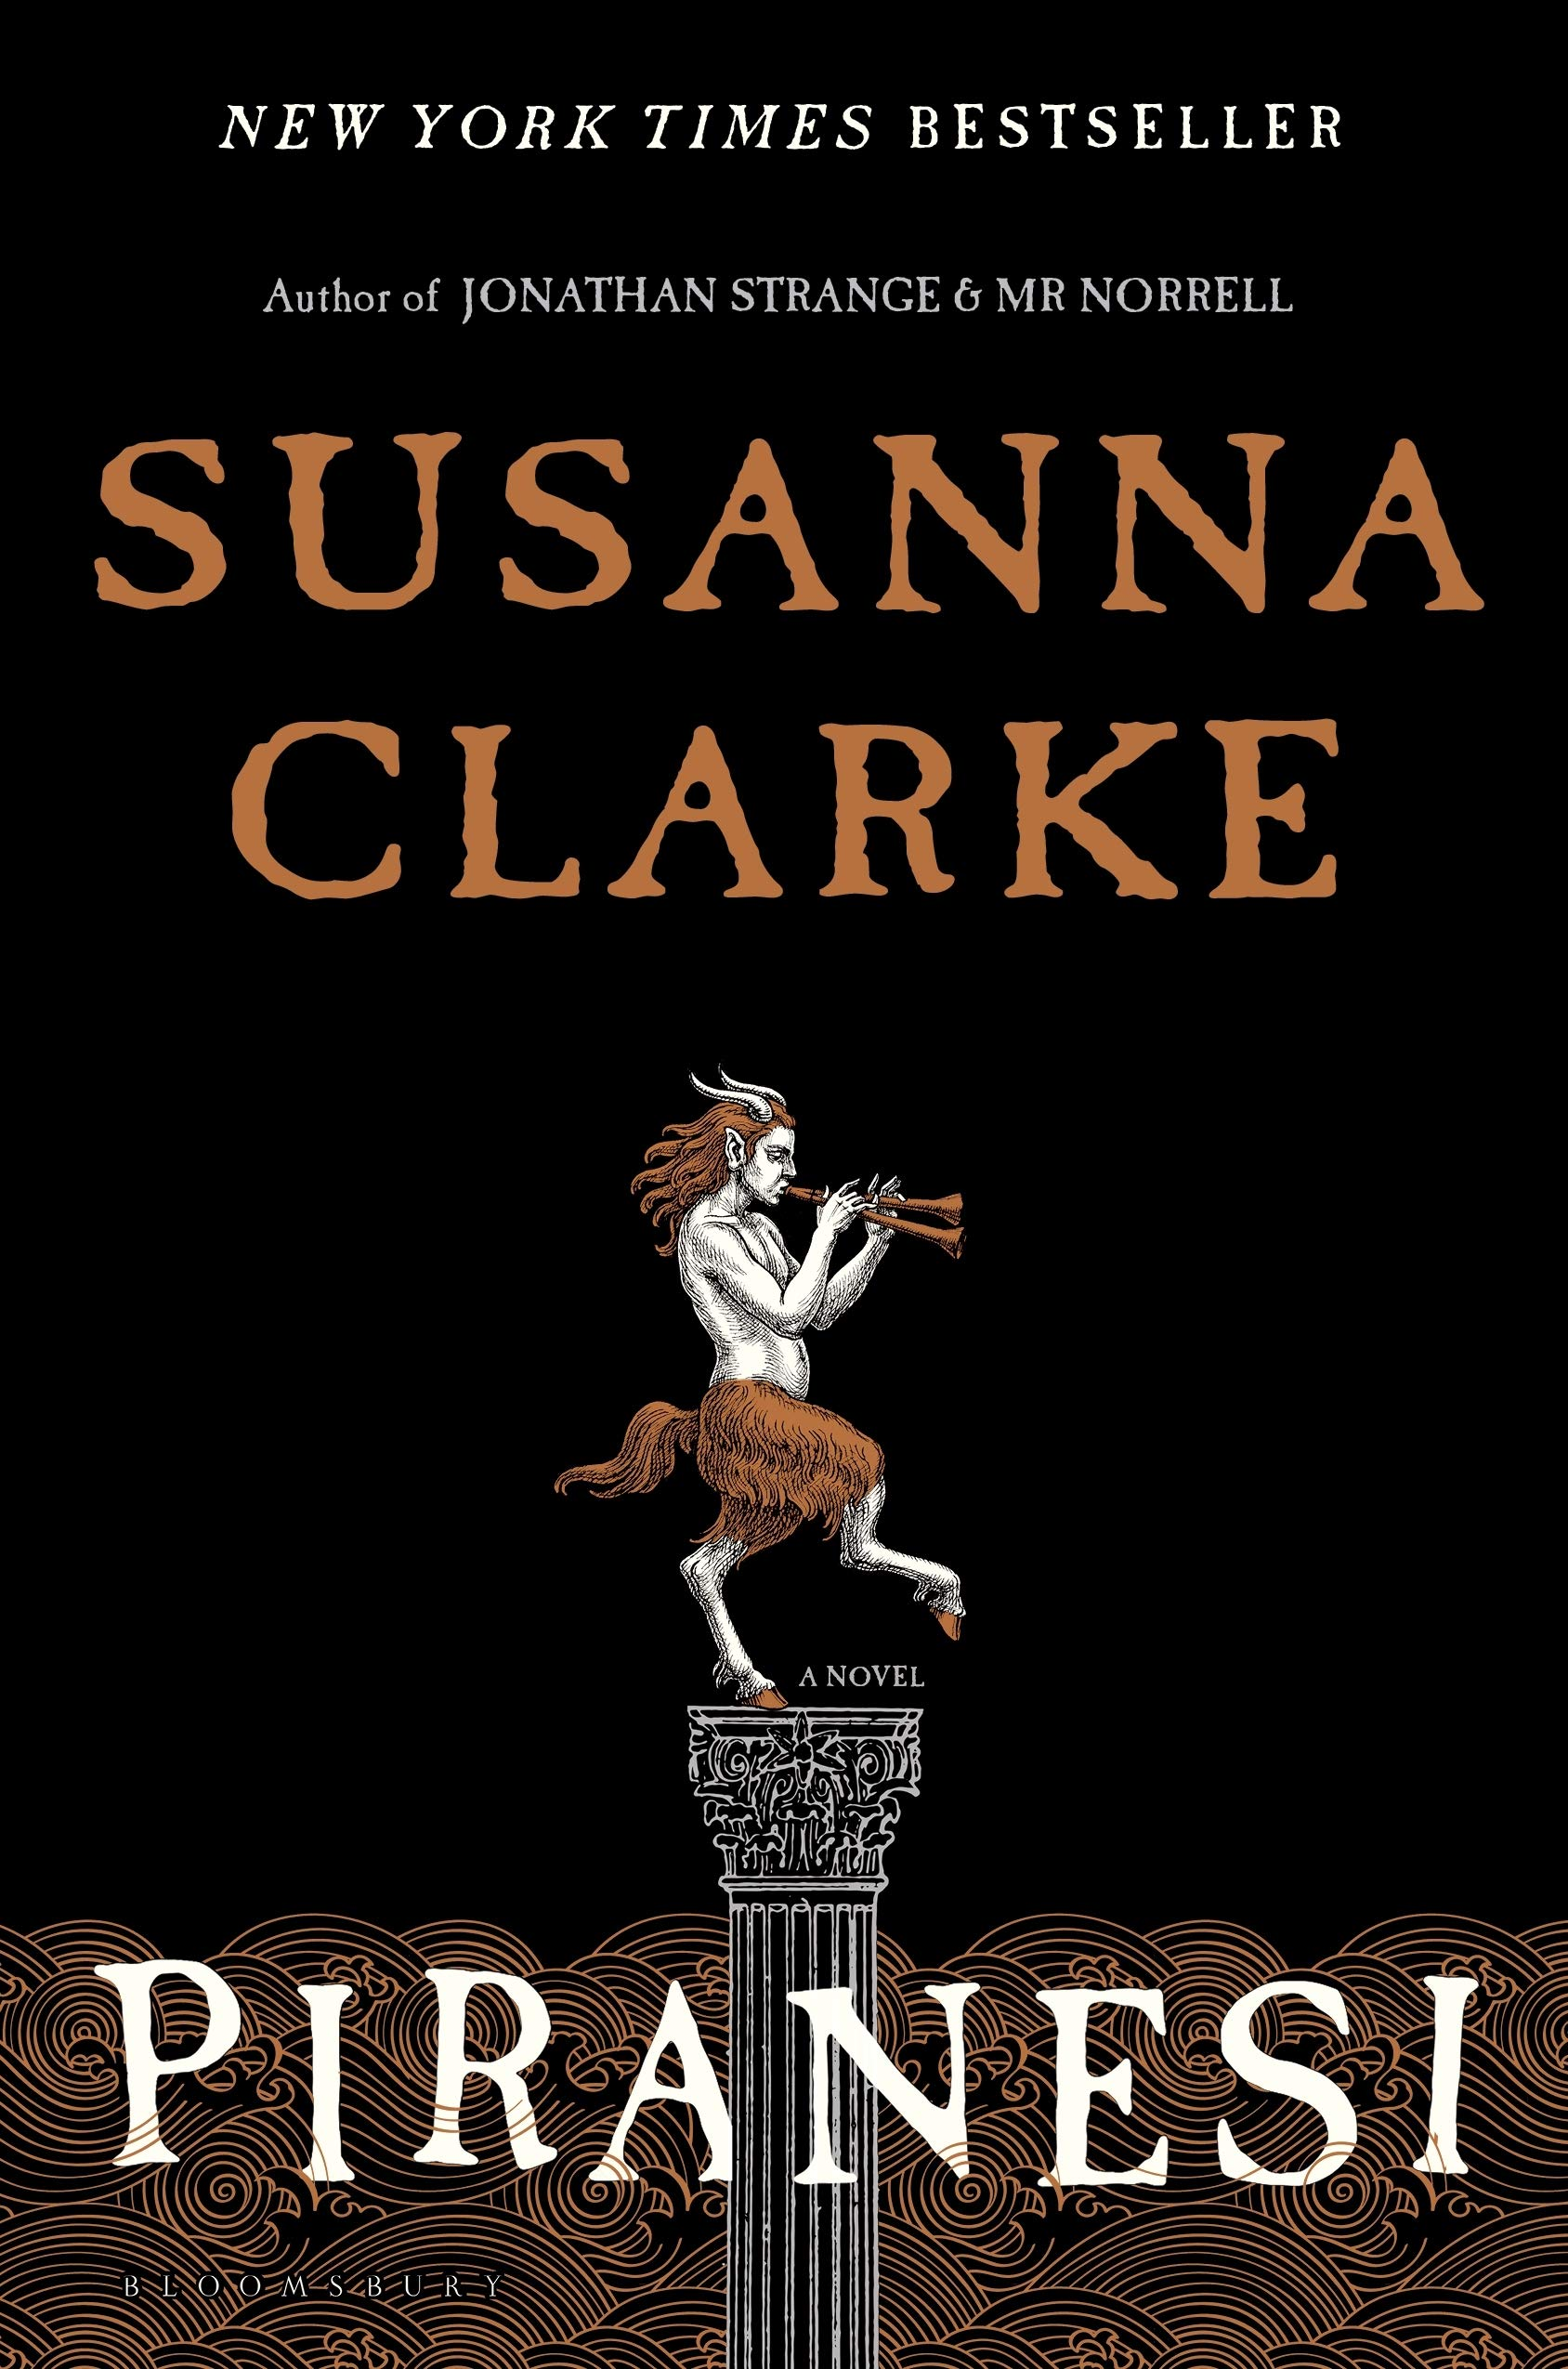 Piranesi: Amazon.it: Clarke, Susanna: Libri in altre lingue